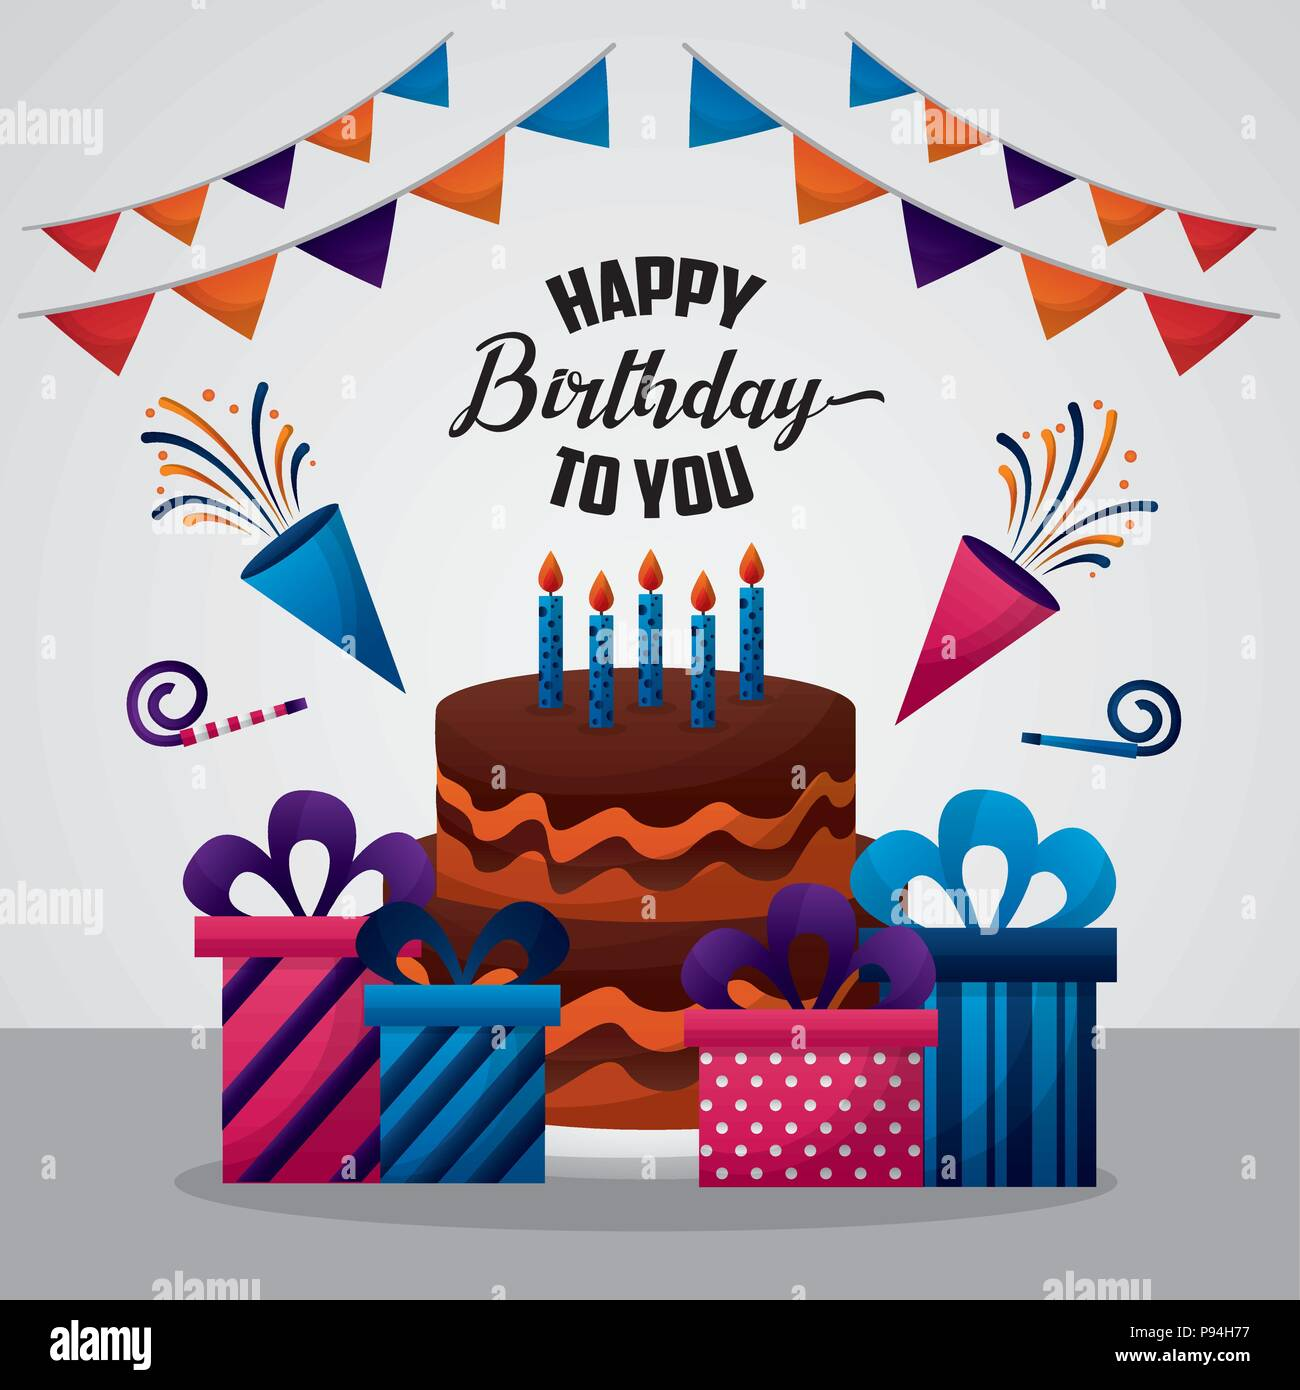 Happy Birthday Card Colorspennants Konfetti Hute Kuchen Geschenkboxen Vector Illustration